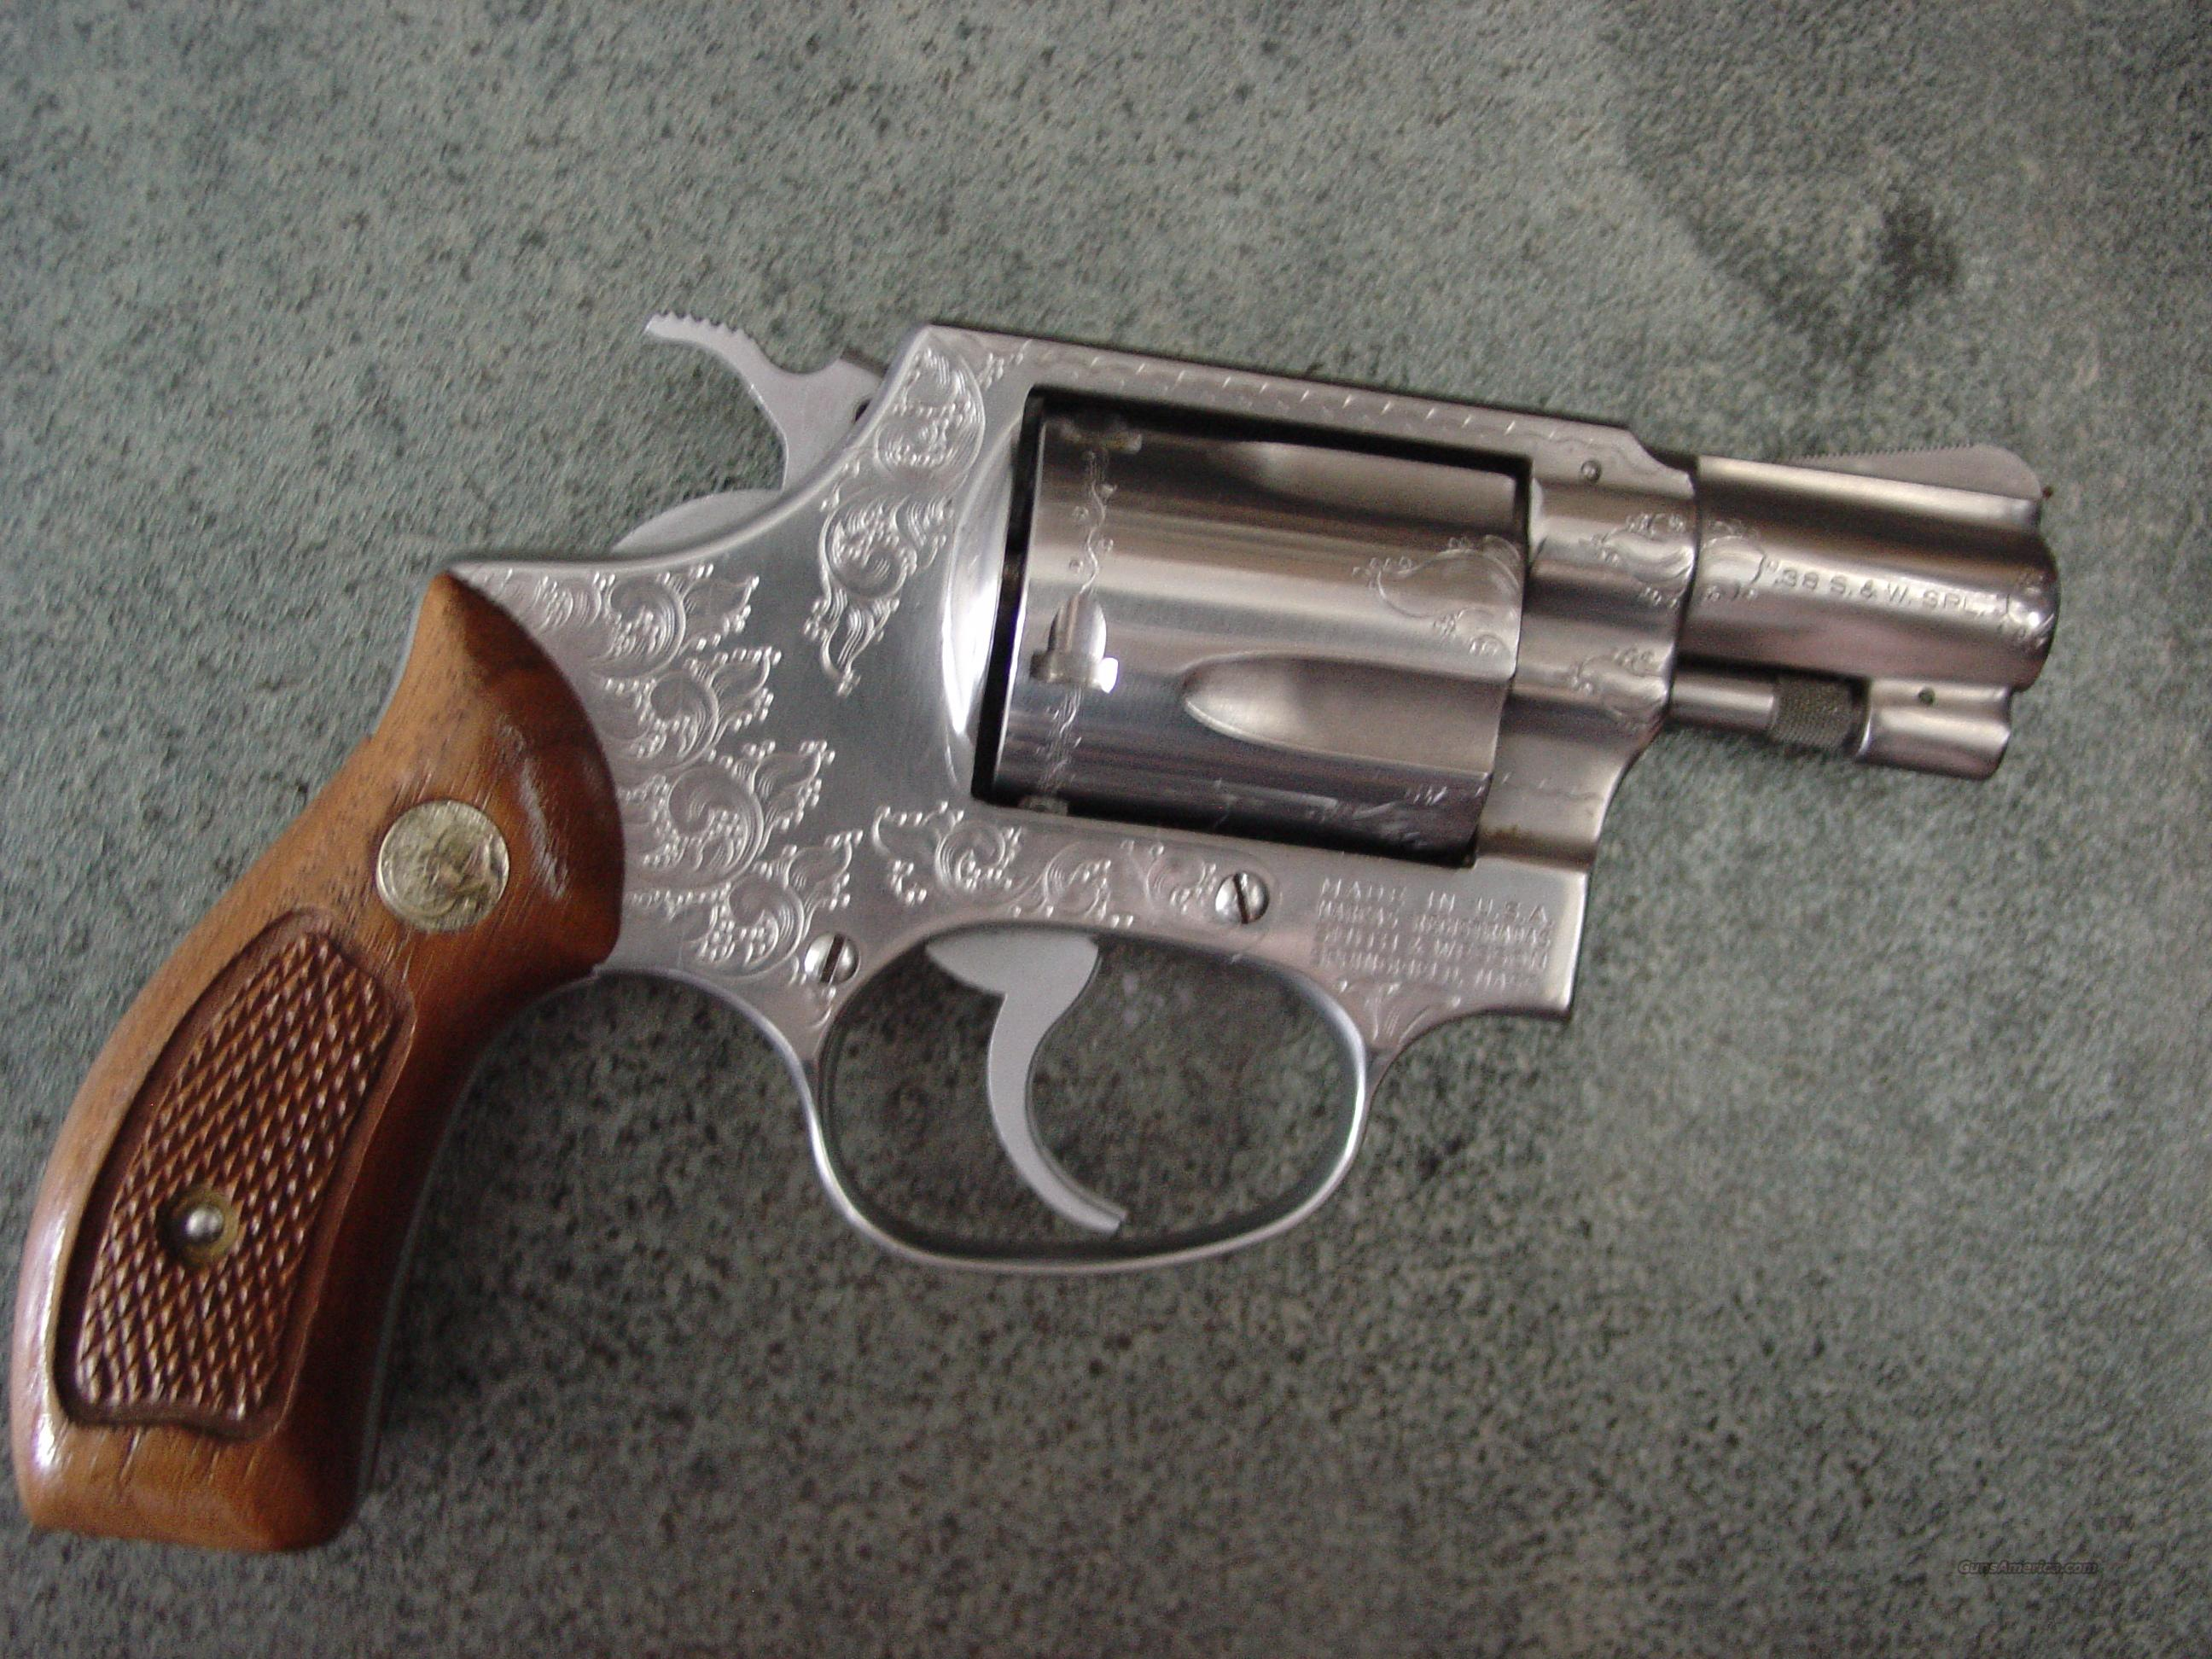 "Smith & Wesson Model 60,no dash,2""pinned barrel,engraved,Chiefs Special,polished satin stainless,1969-1971,nice  Guns > Pistols > Smith & Wesson Revolvers > Pocket Pistols"